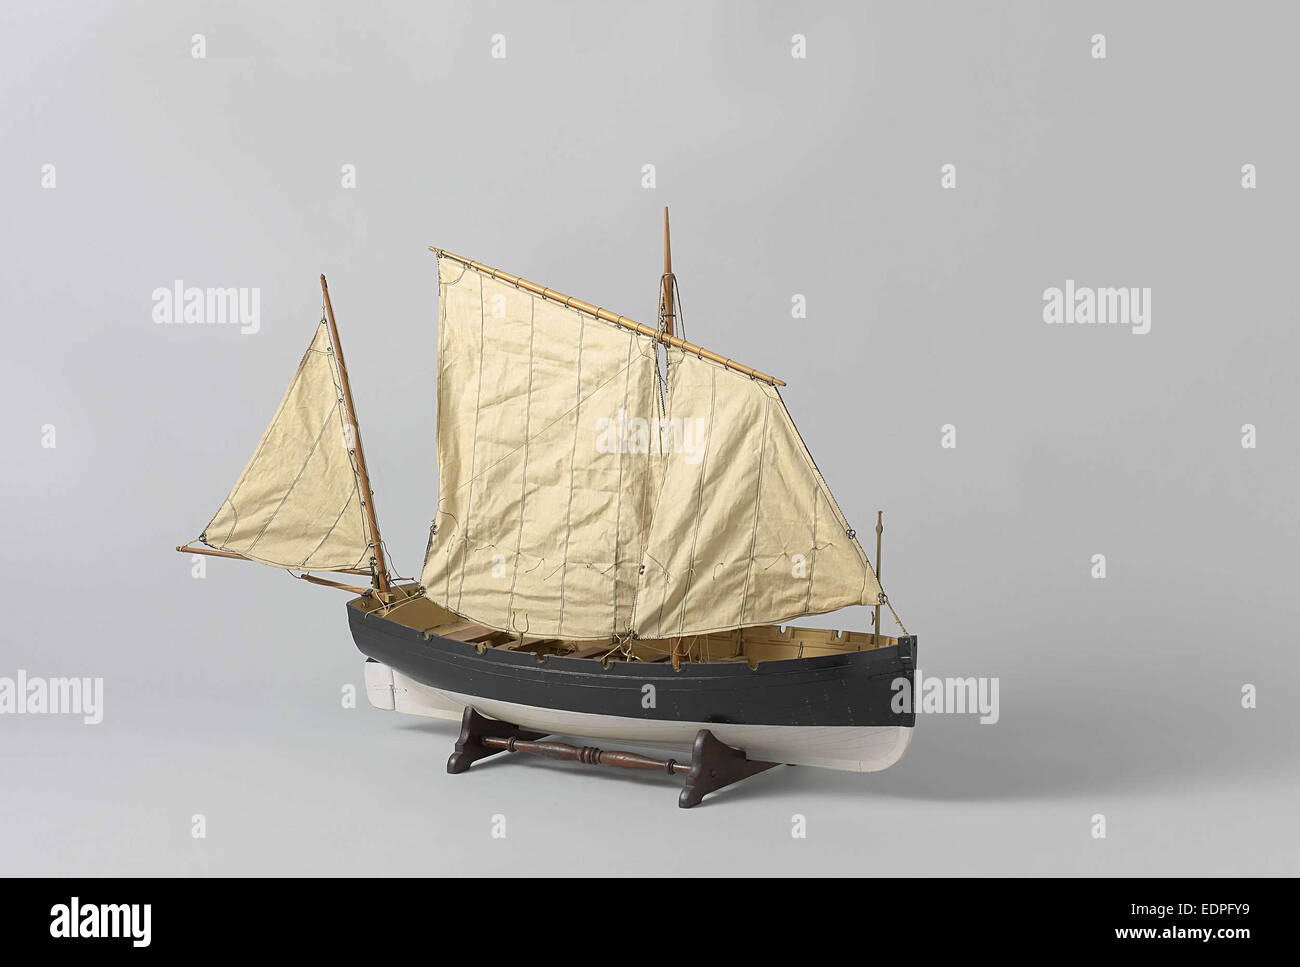 A one-masted sailing boat with a mainsail and jib rigged fore and aft, Anonymous, c. 1880 Stock Photo